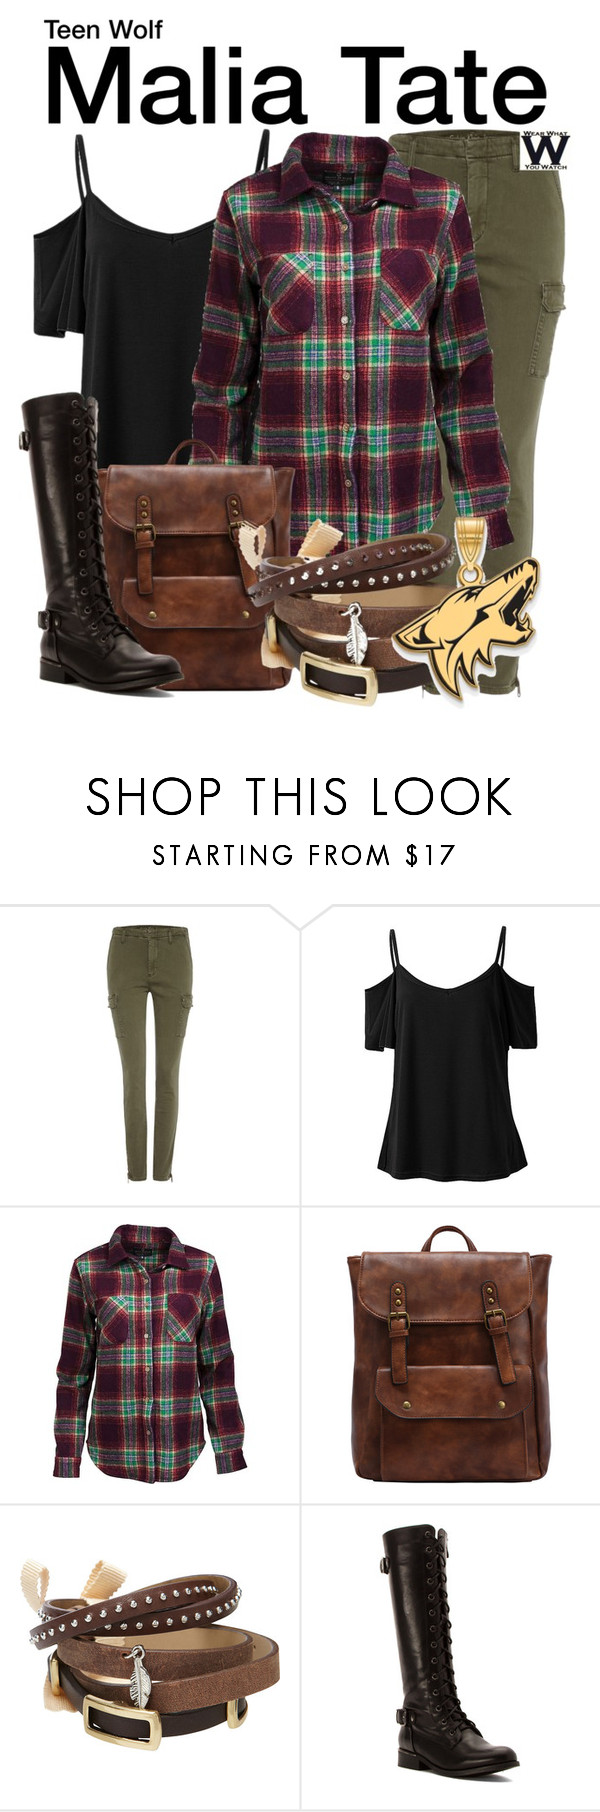 """""""Teen Wolf"""" by wearwhatyouwatch ❤ liked on Polyvore featuring Calvin Klein, United by Blue, TOKYObay, Wanted, LogoArt, television and wearwhatyouwatch"""